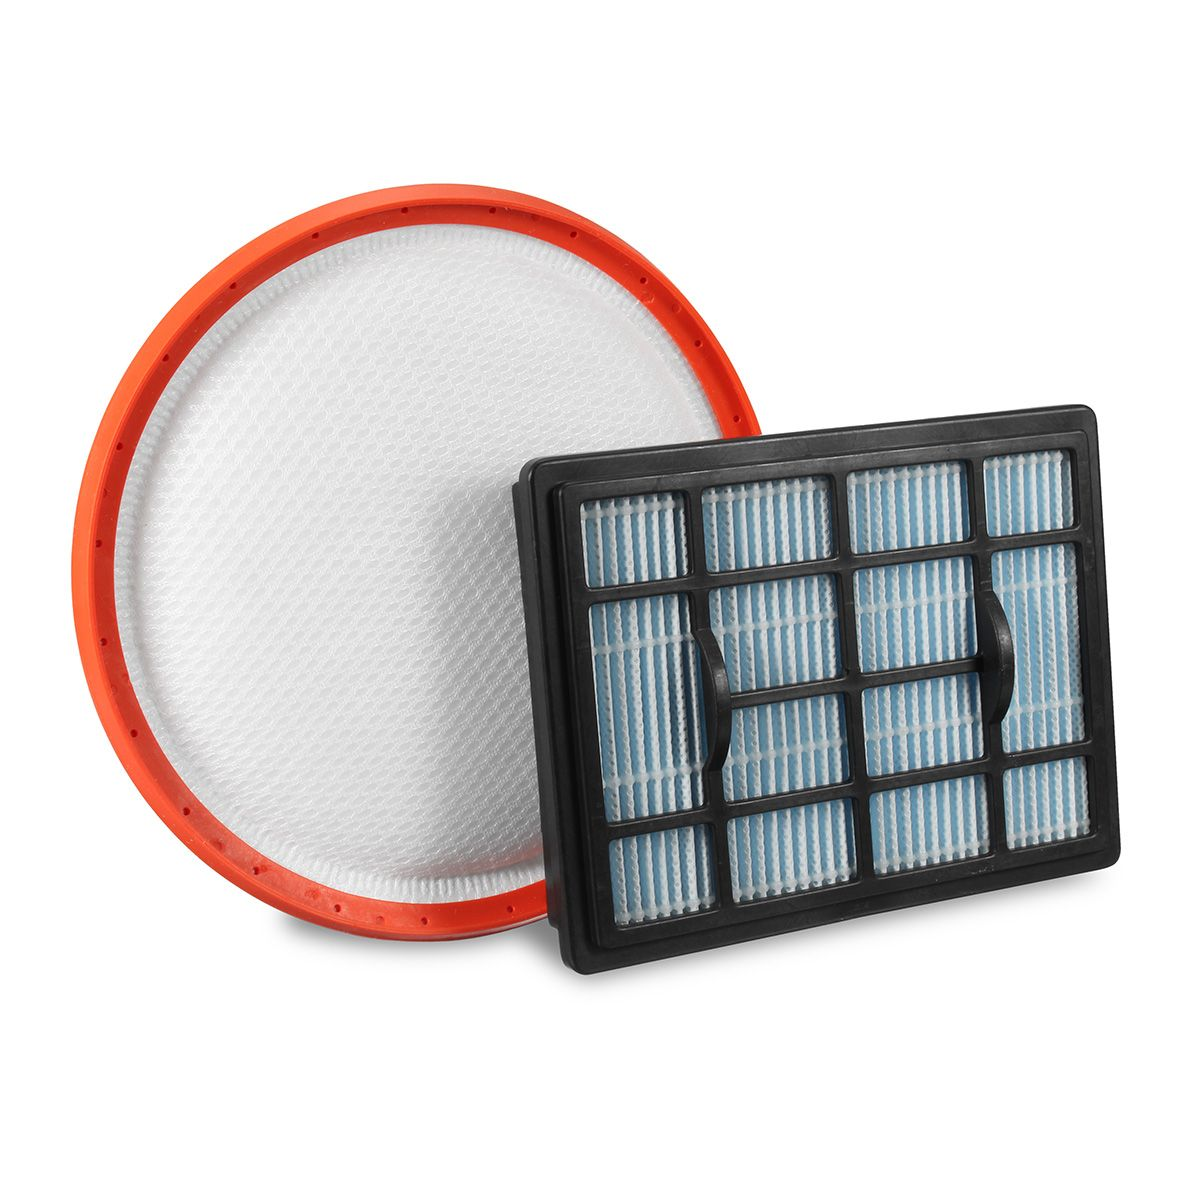 Pre & Post H12 Motor HEPA Filter for Vax Power 6 C89-P6N-P Vacuum Cleaner Hoover